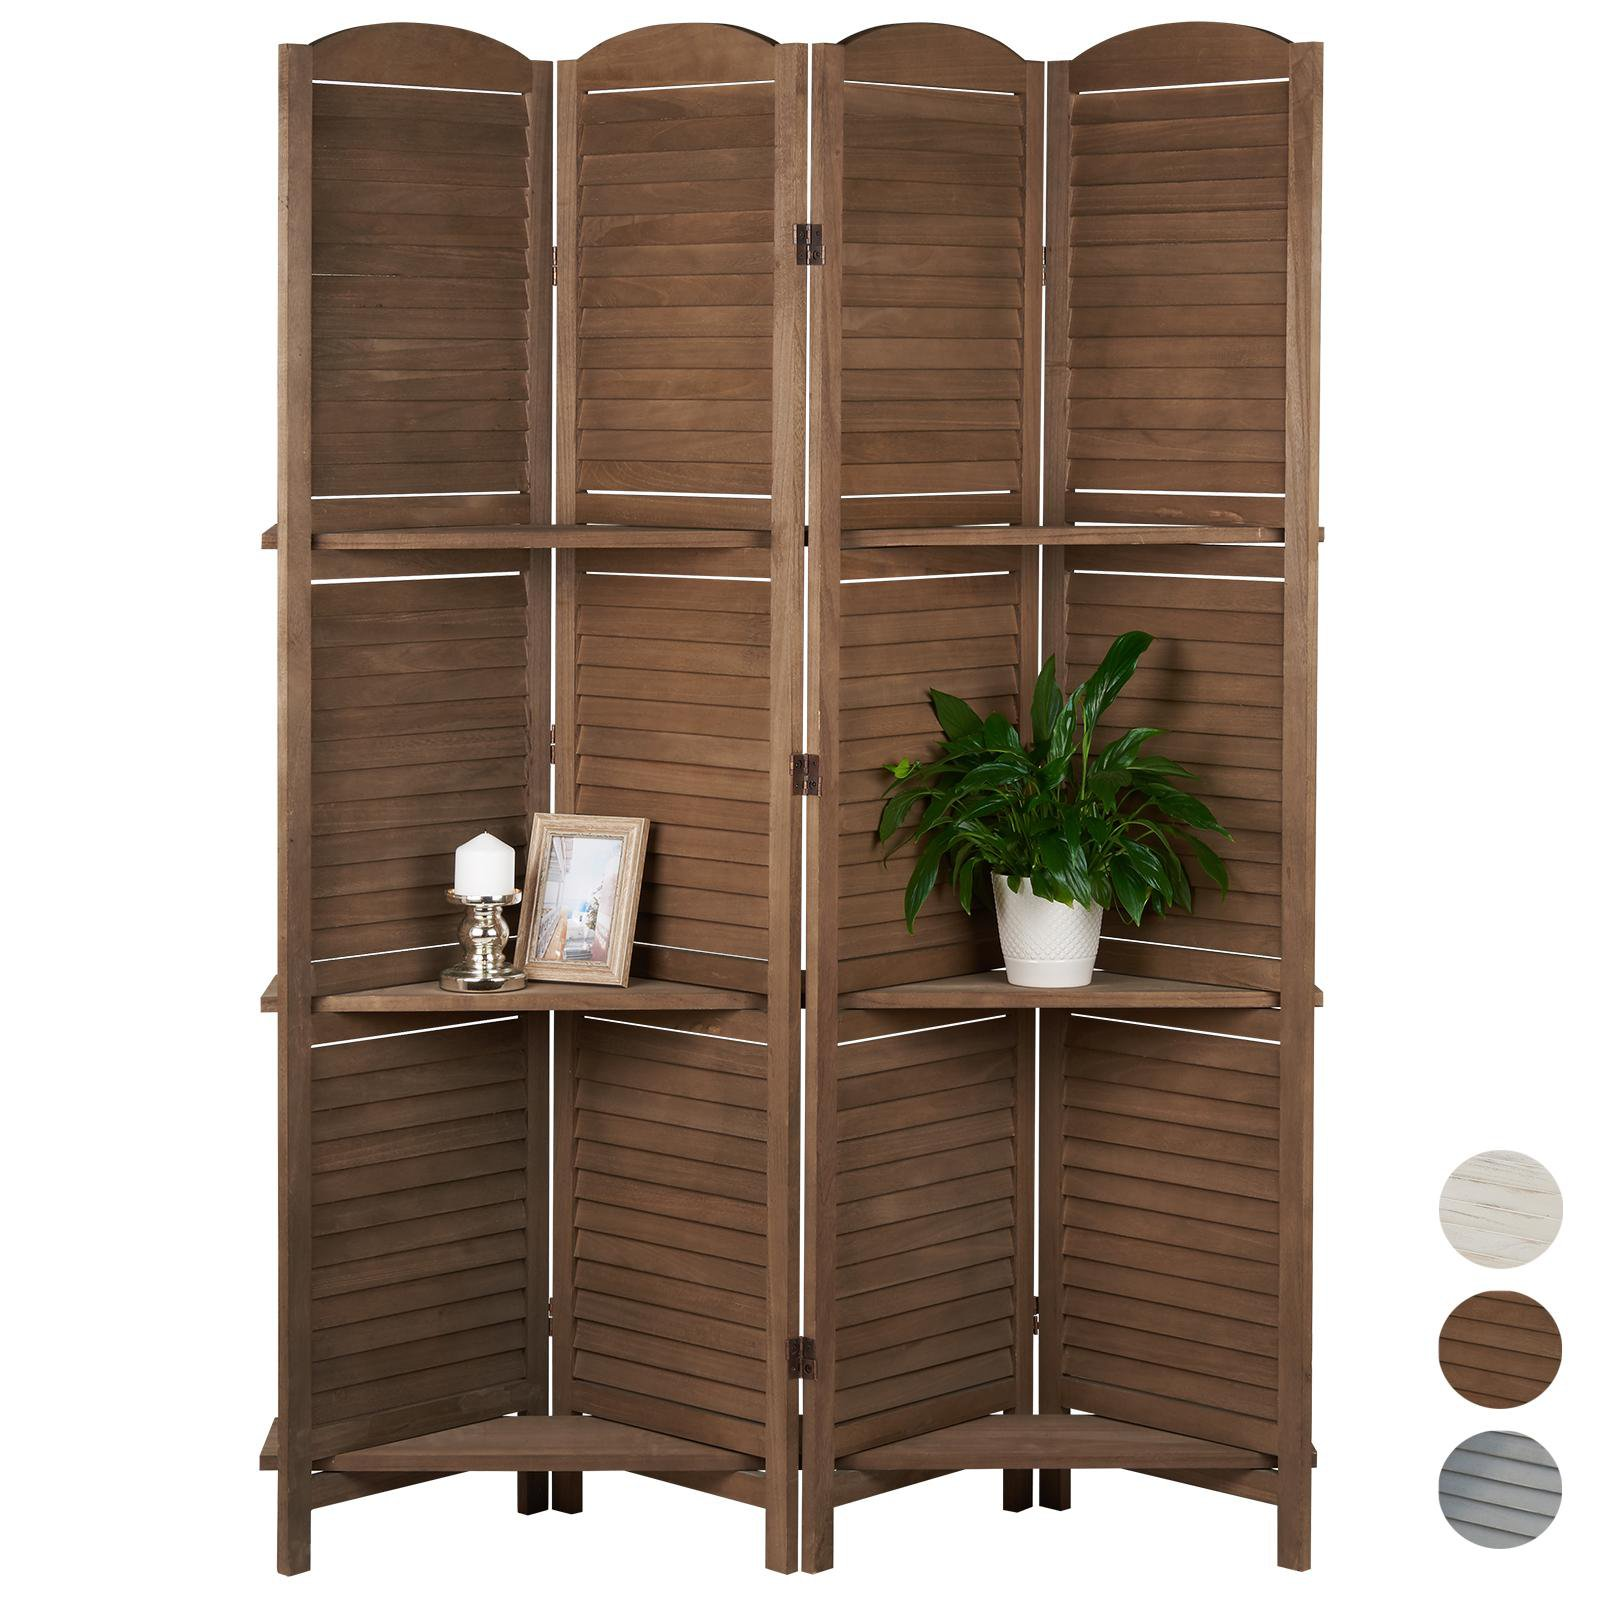 image-Hartleys 4 Panel Shabby Chic Room Divider - Brown